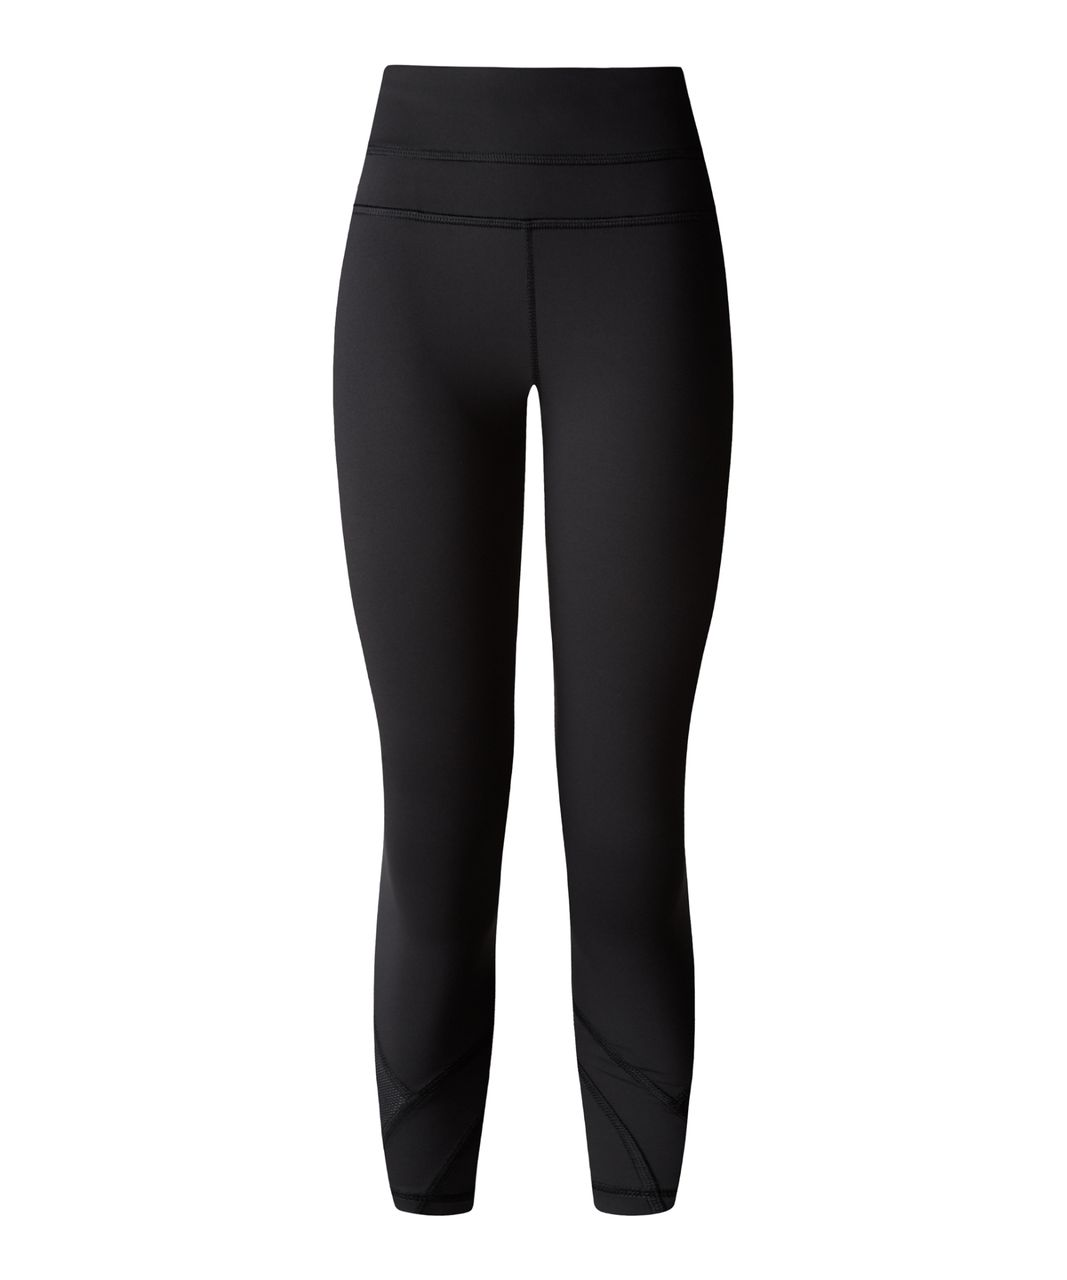 Lululemon Run: Inspire Crop II - Black